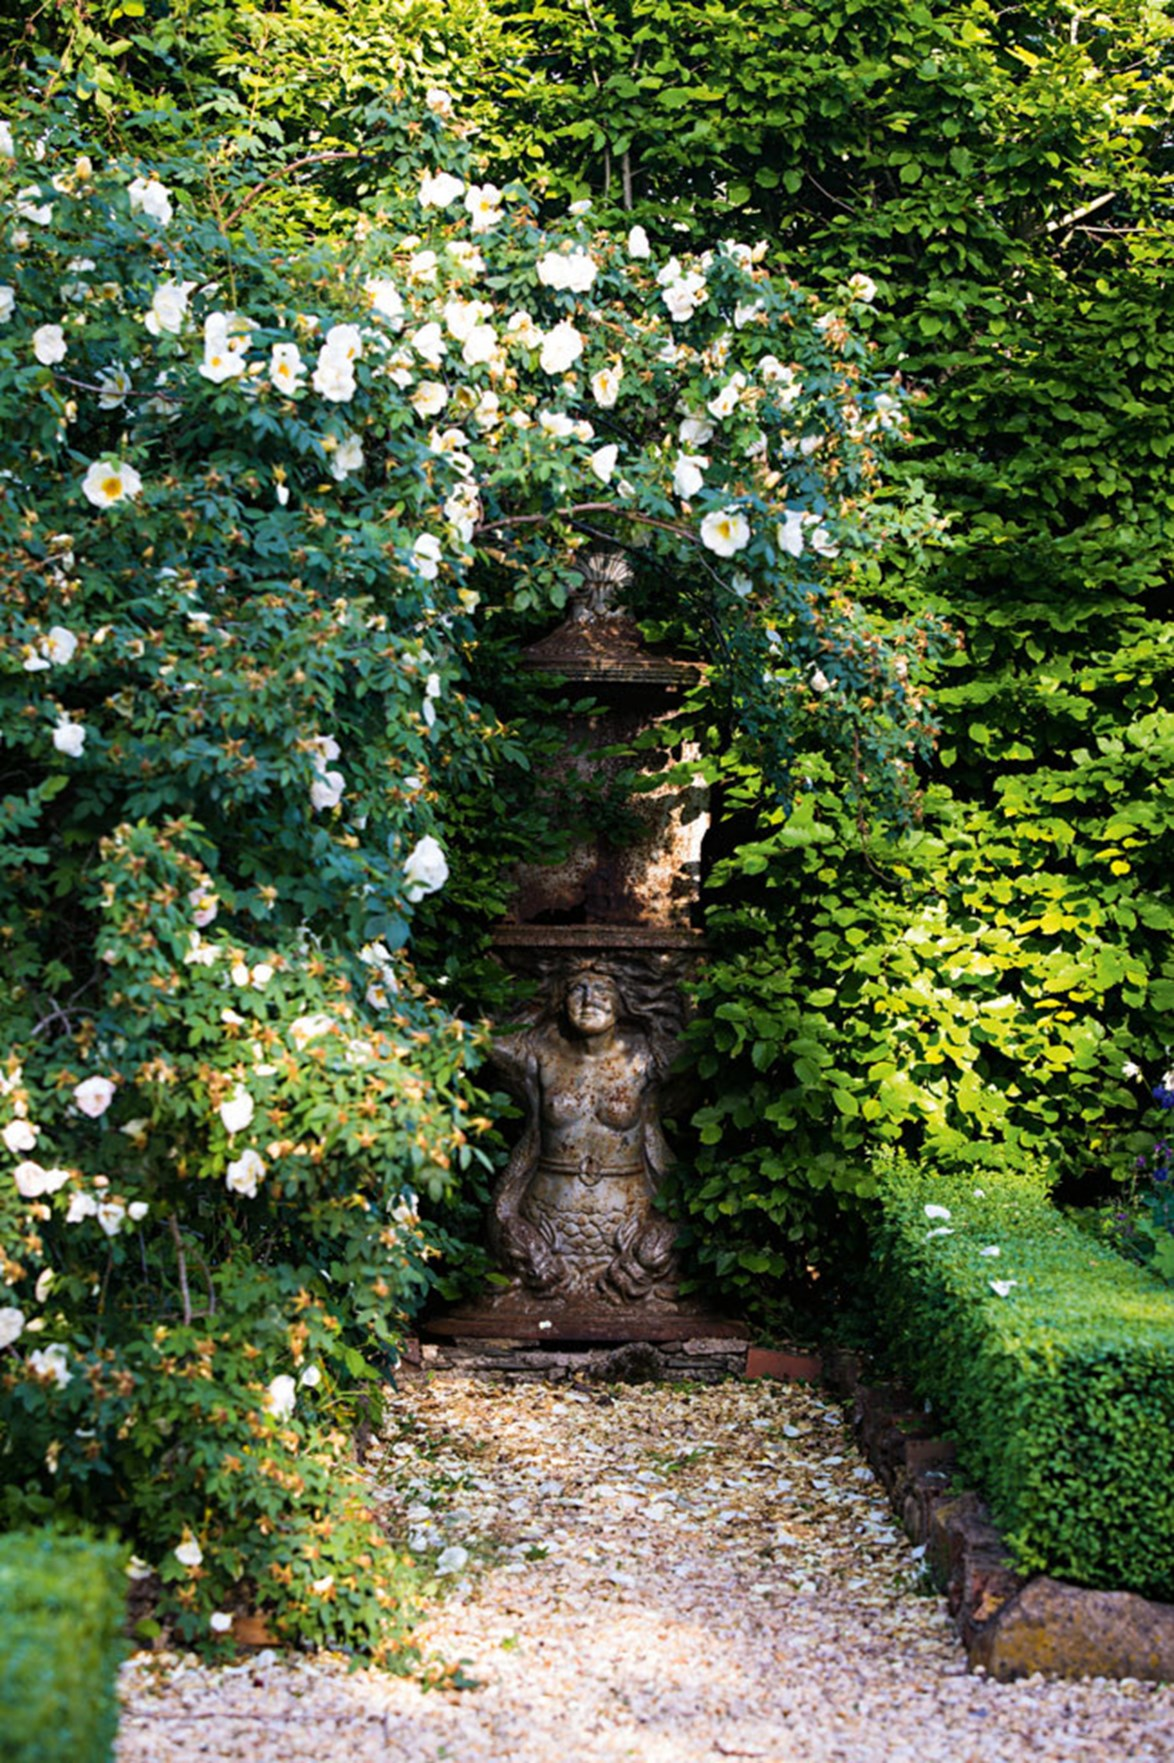 "A 'fruhlingsgold' rose sprawls over an antique statue at a manicured [country garden in Newlyn, Victoria](https://www.homestolove.com.au/a-flourishing-country-garden-in-newlyn-victoria-13541|target=""_blank""). The impressive garden of ornamental grasses, rambling roses and perennials is bordered by an immaculately clipped border of box hedge. *Photo: Claire Takacs*"